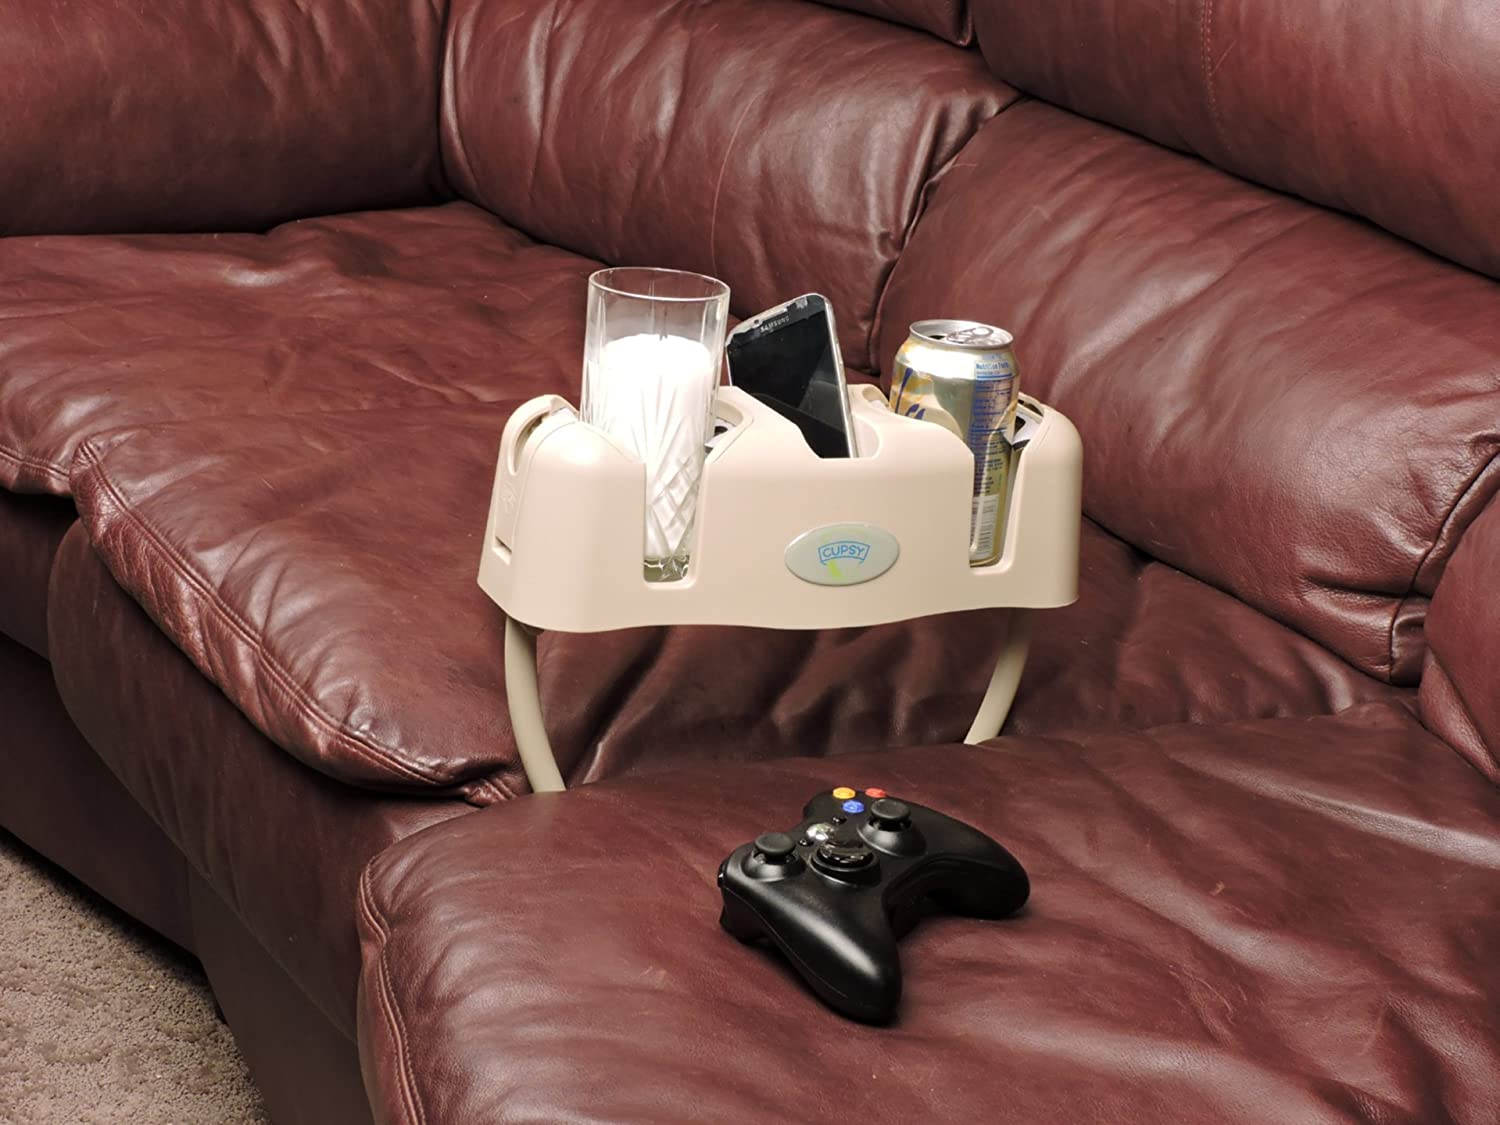 Recliner Caddy Amp Media Living Series Over The Arm Remote